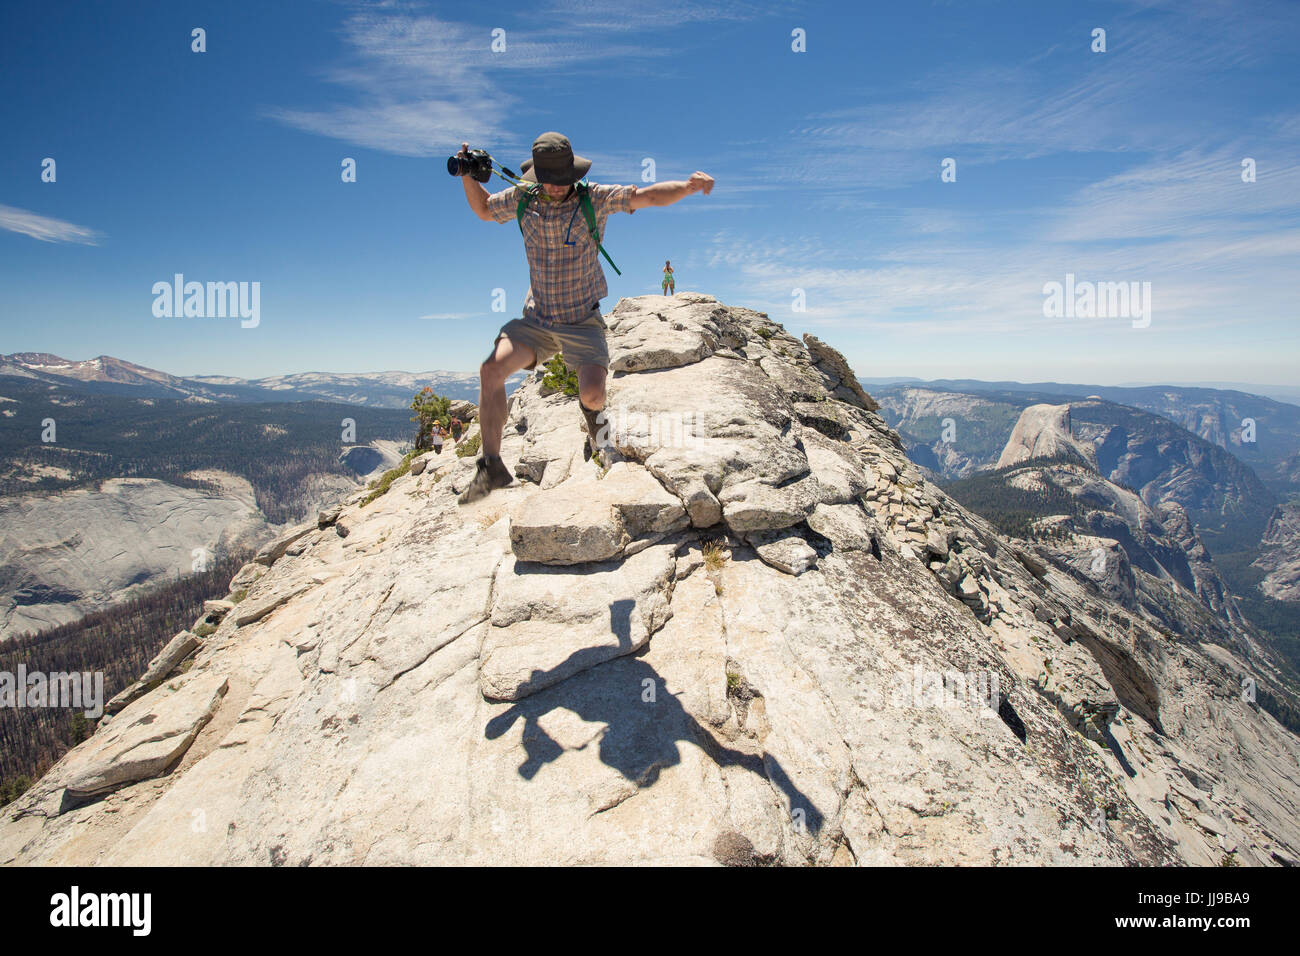 955ac8adac00 A man leaps into the air after hiking Clouds Rest in Yosemite National Park.